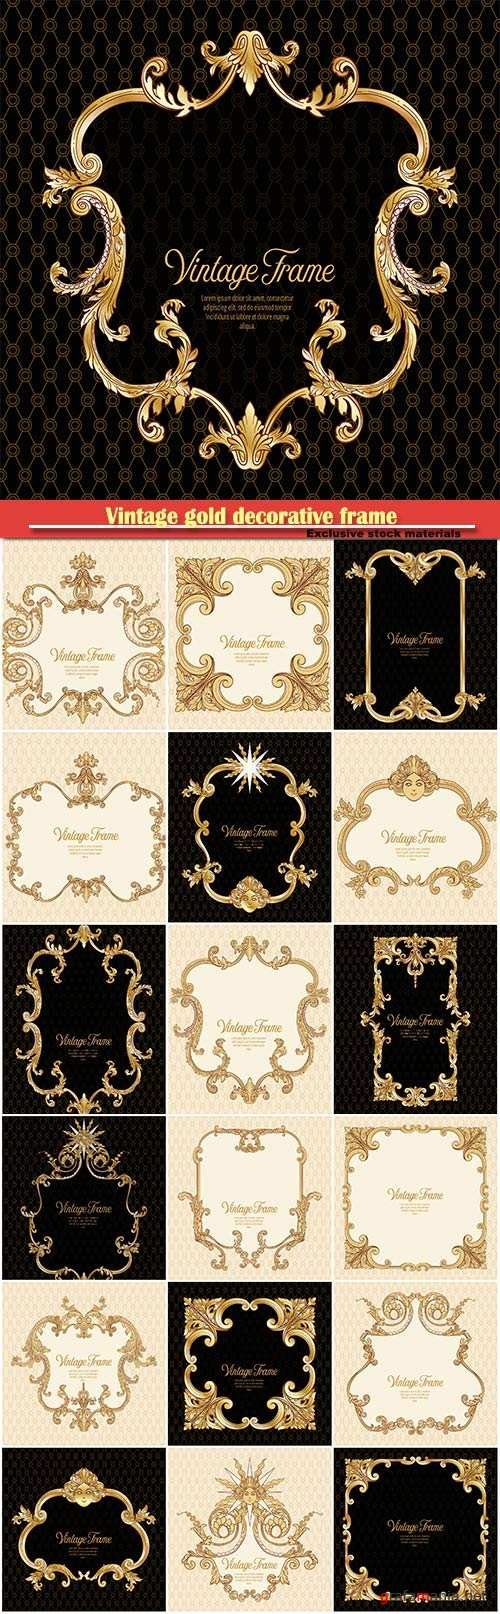 Vintage gold decorative frame in rococo style for menus, ads, advertisements, labels